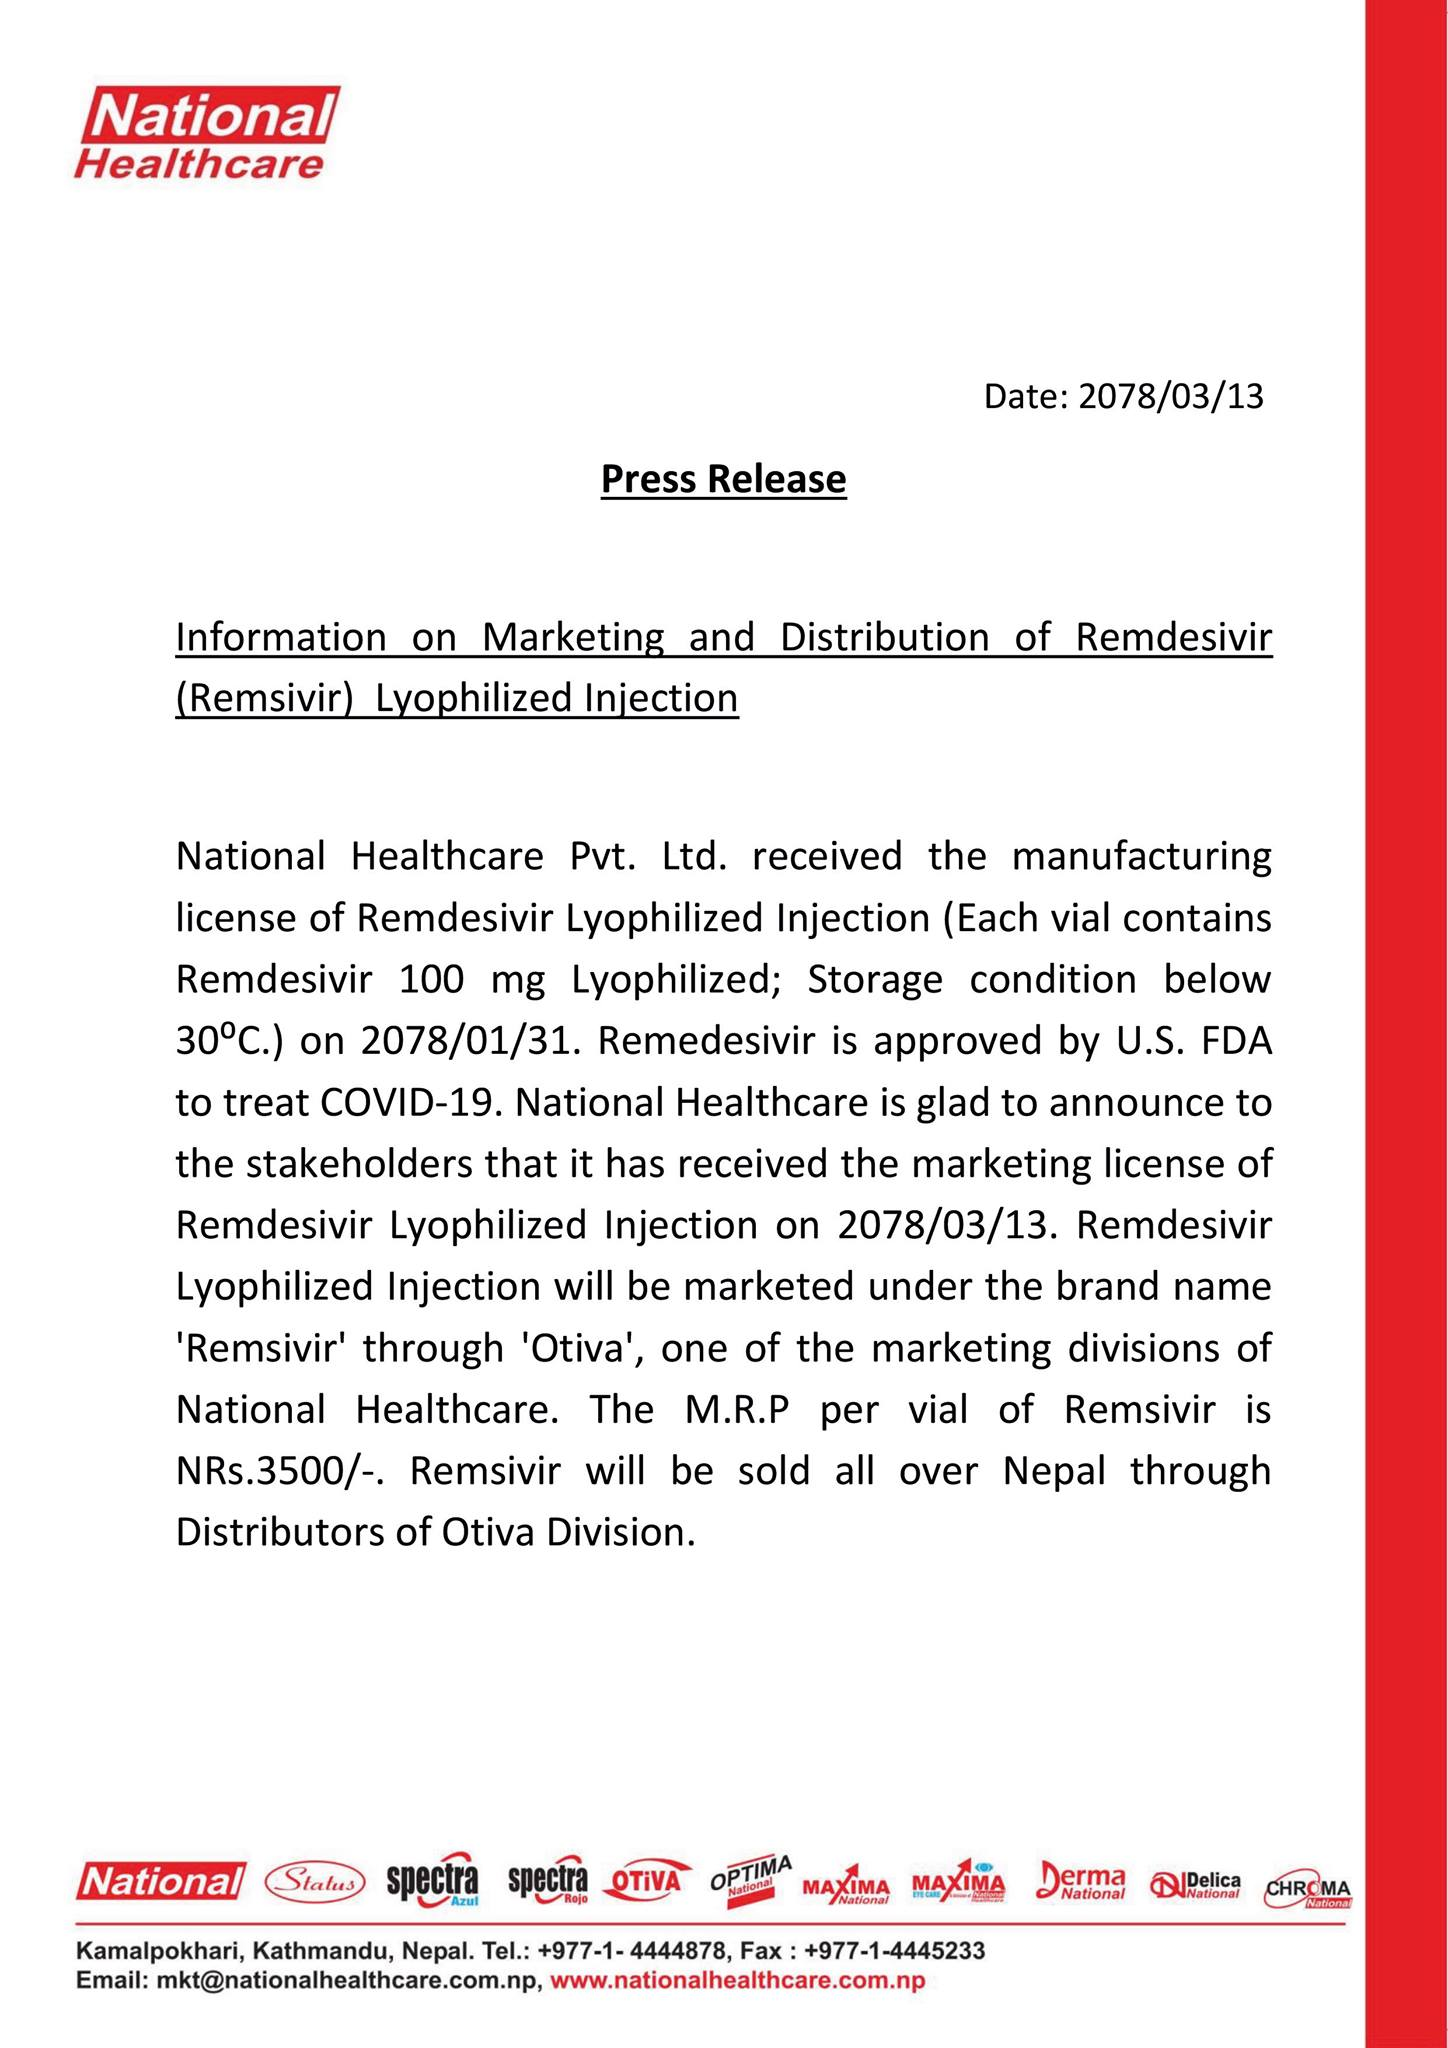 Information on marketing and distribution of Remdesivir lyophilized injection Nepal National healthcare